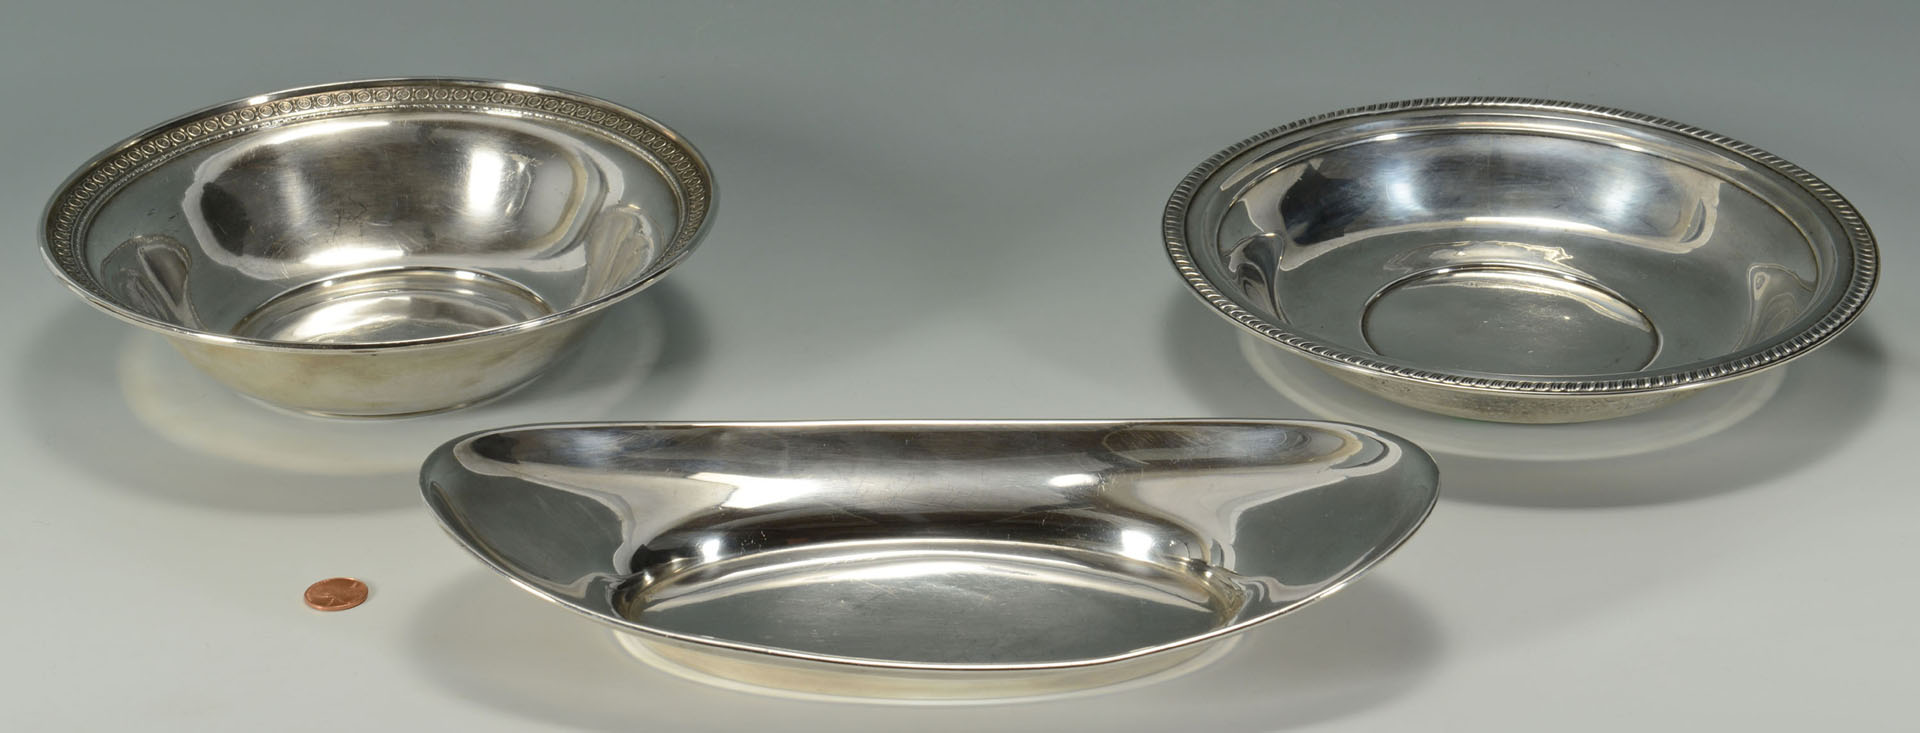 Lot 297: Three Sterling Silver Serving Bowls